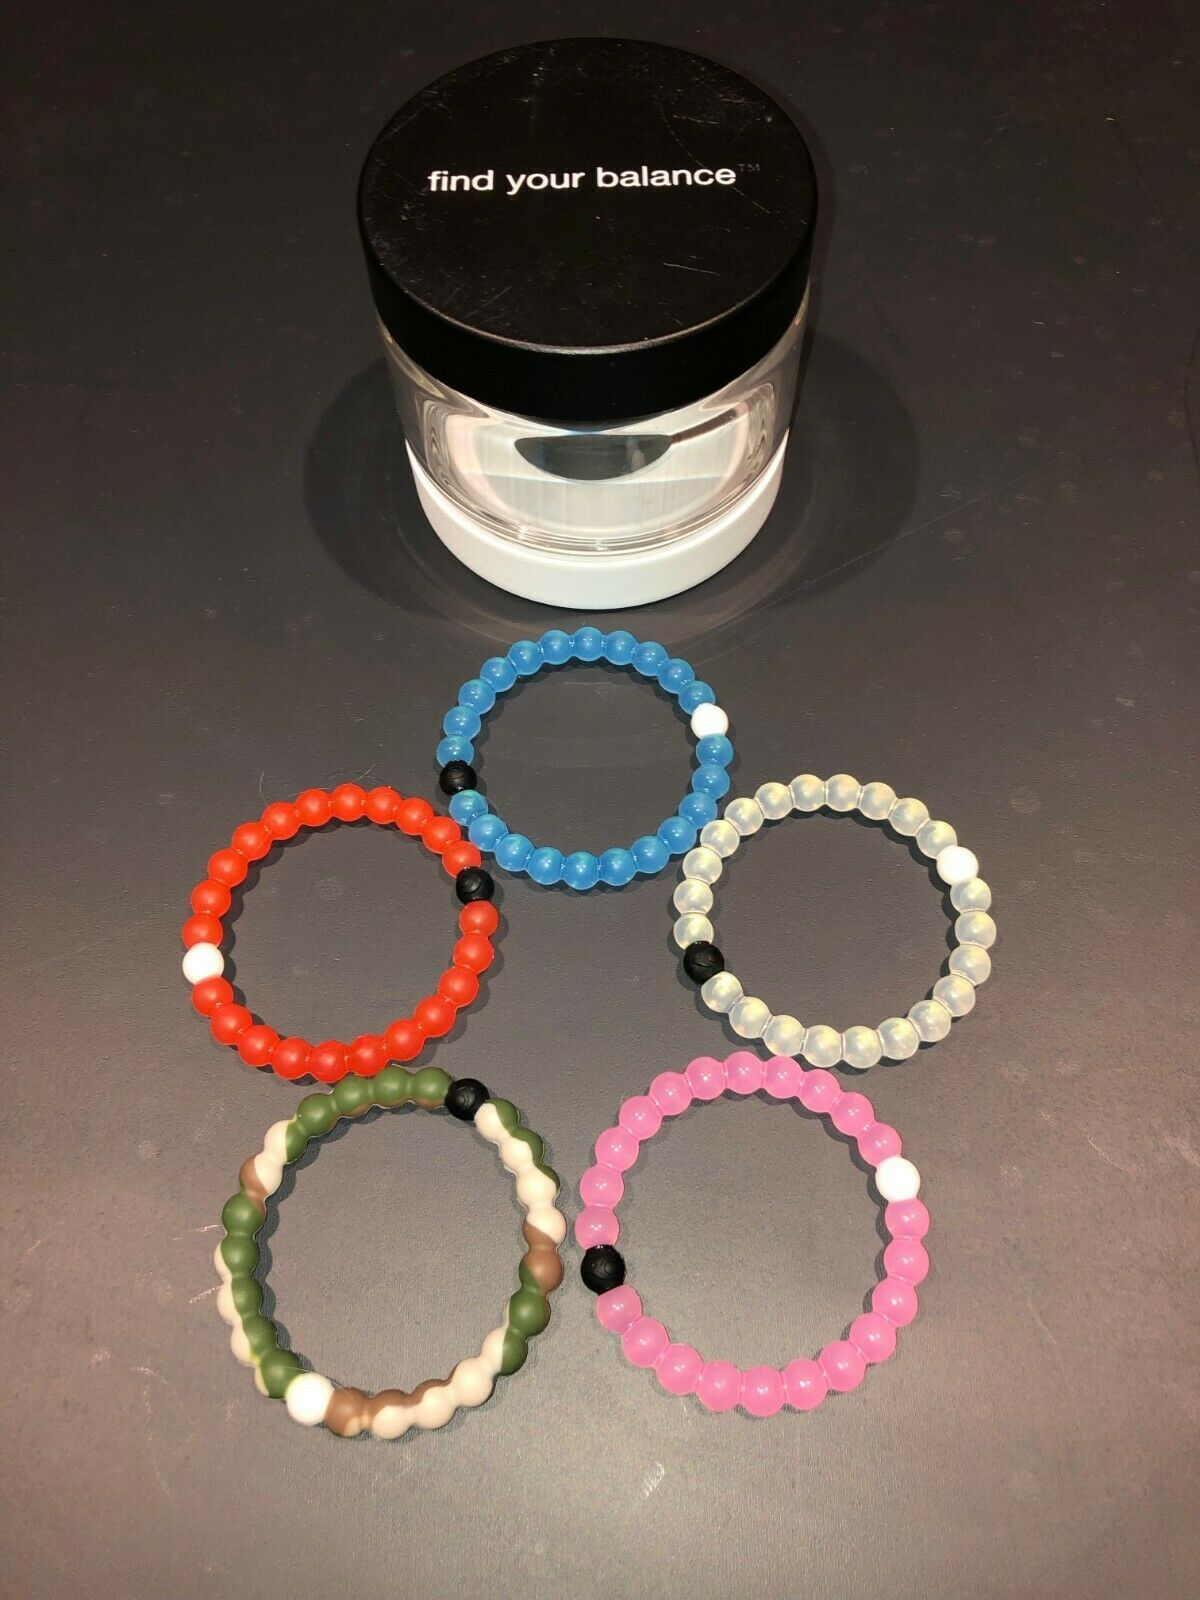 Limited Edition of 5 Small Lokai Bracelets (bluee, Pink, Camo, orange, Original)